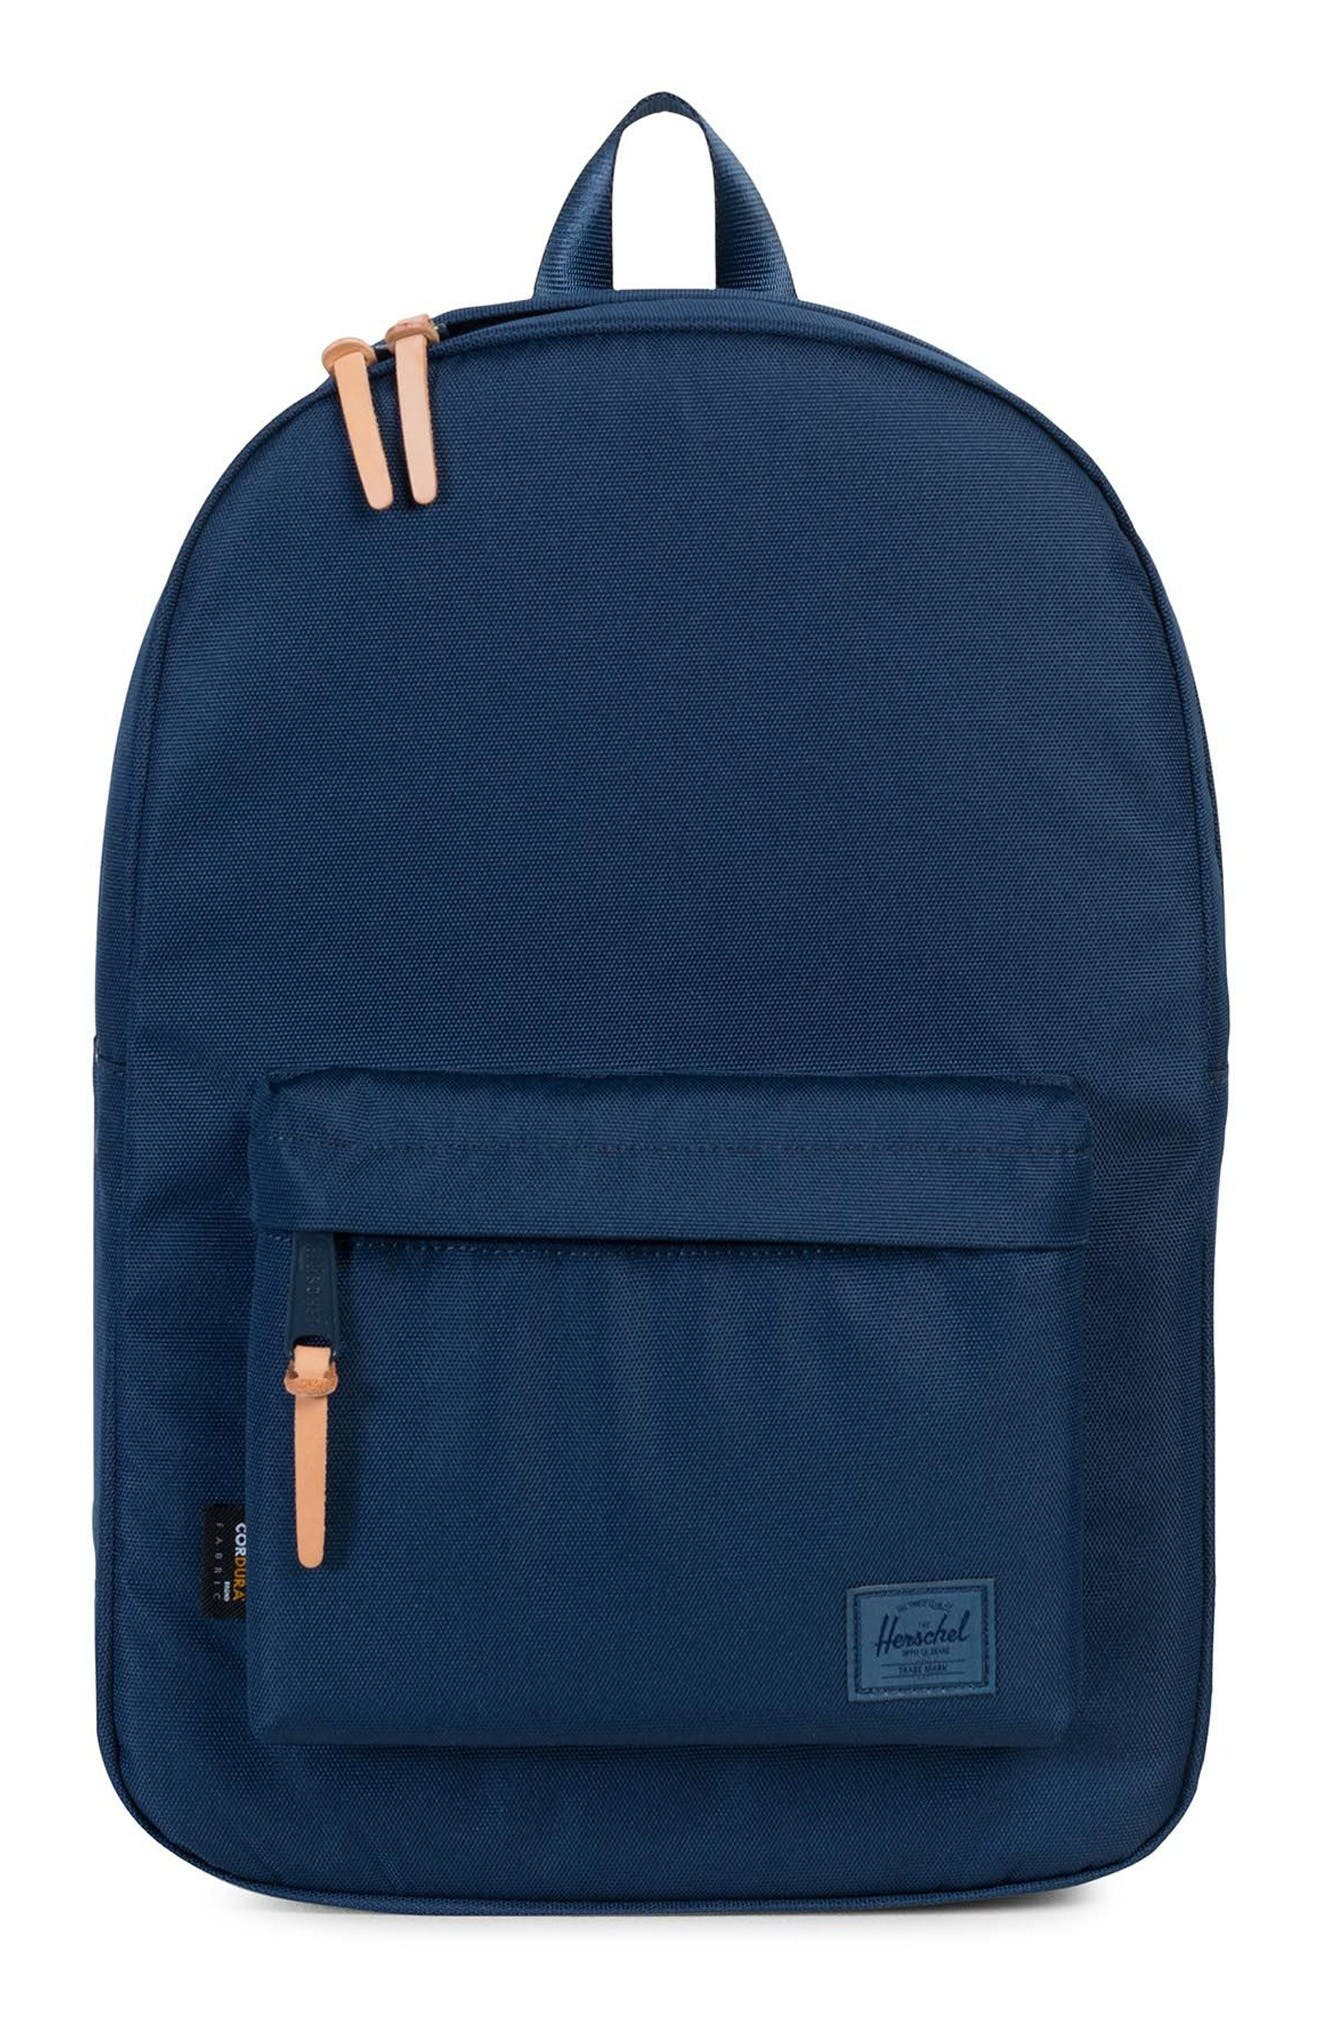 Alternate Image 1 Selected - Herschel Supply Co. Winlaw Backpack